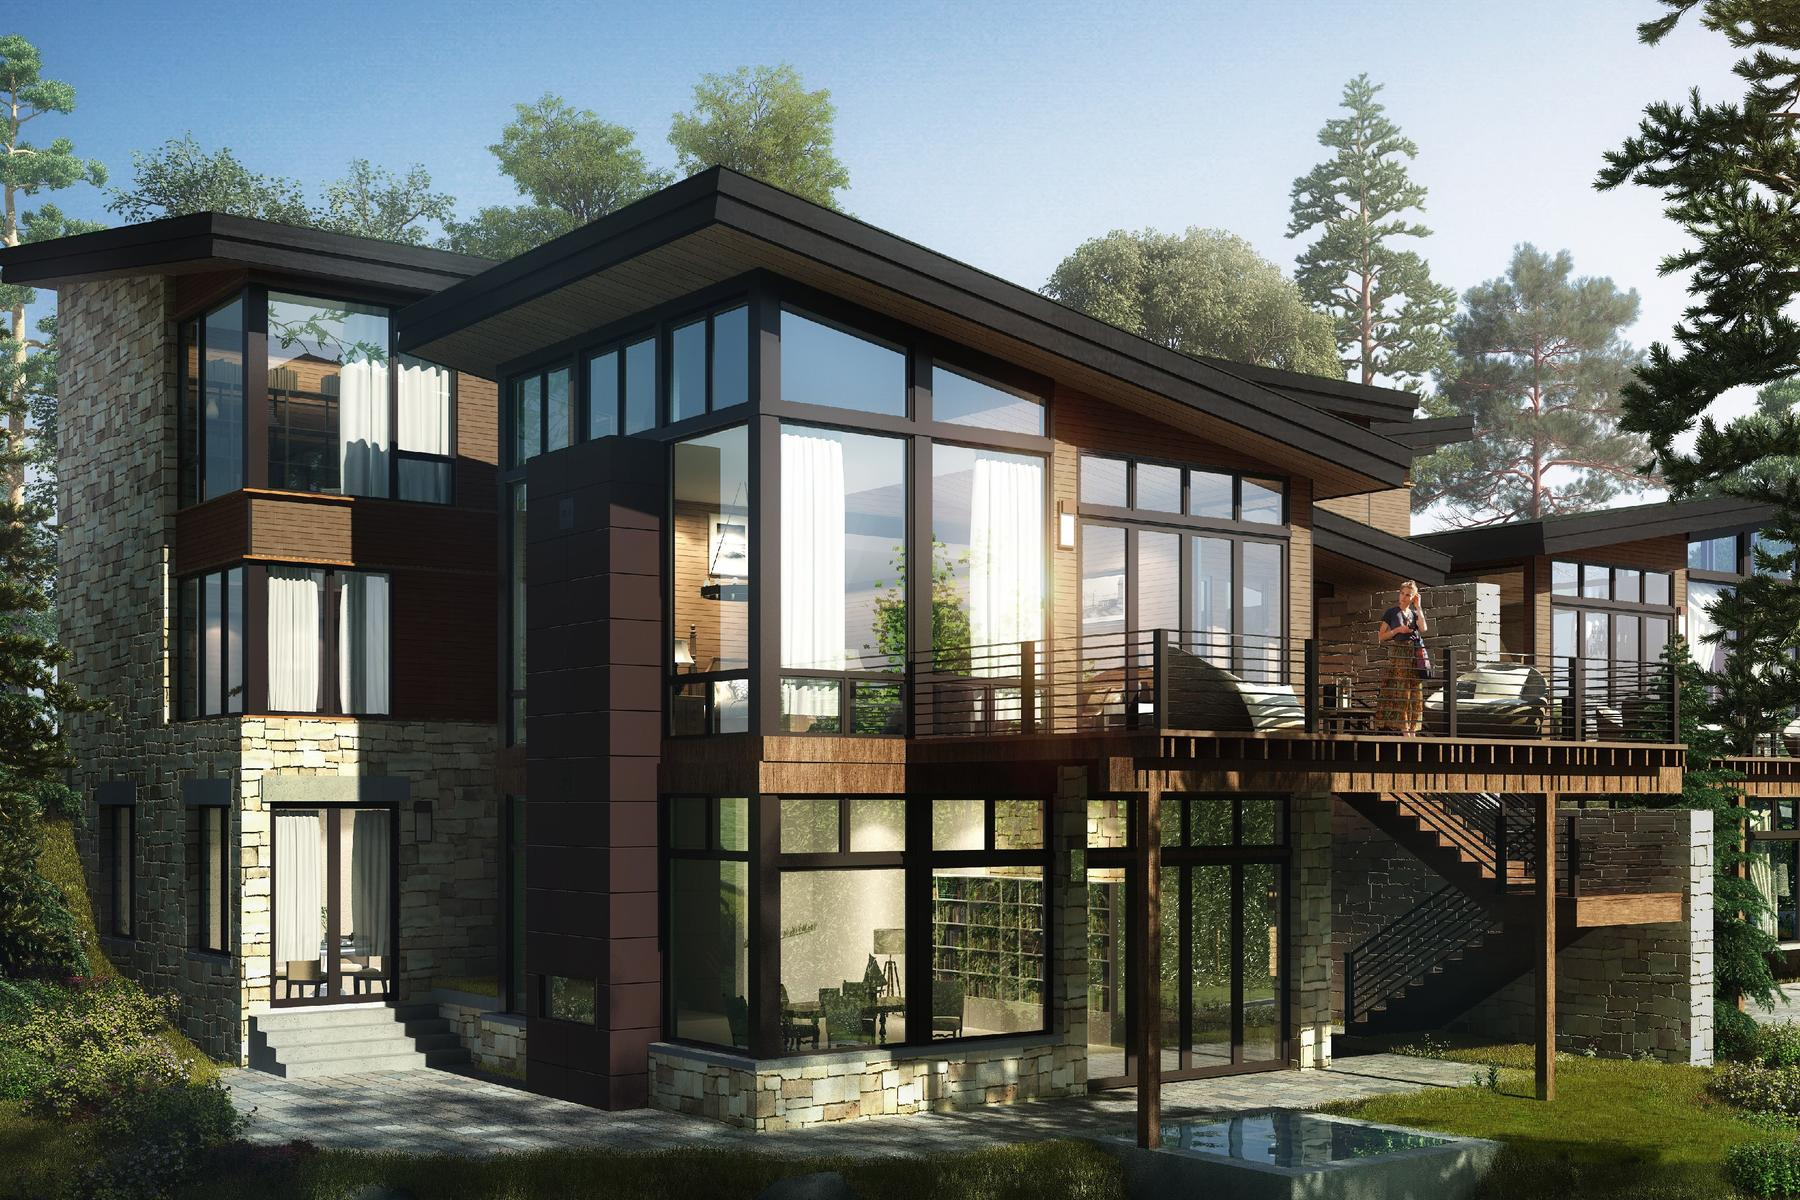 Duplex for Active at The future of East Vail architecture and design has arrived! 4273 Columbine Drive, #W Vail, Colorado 81657 United States